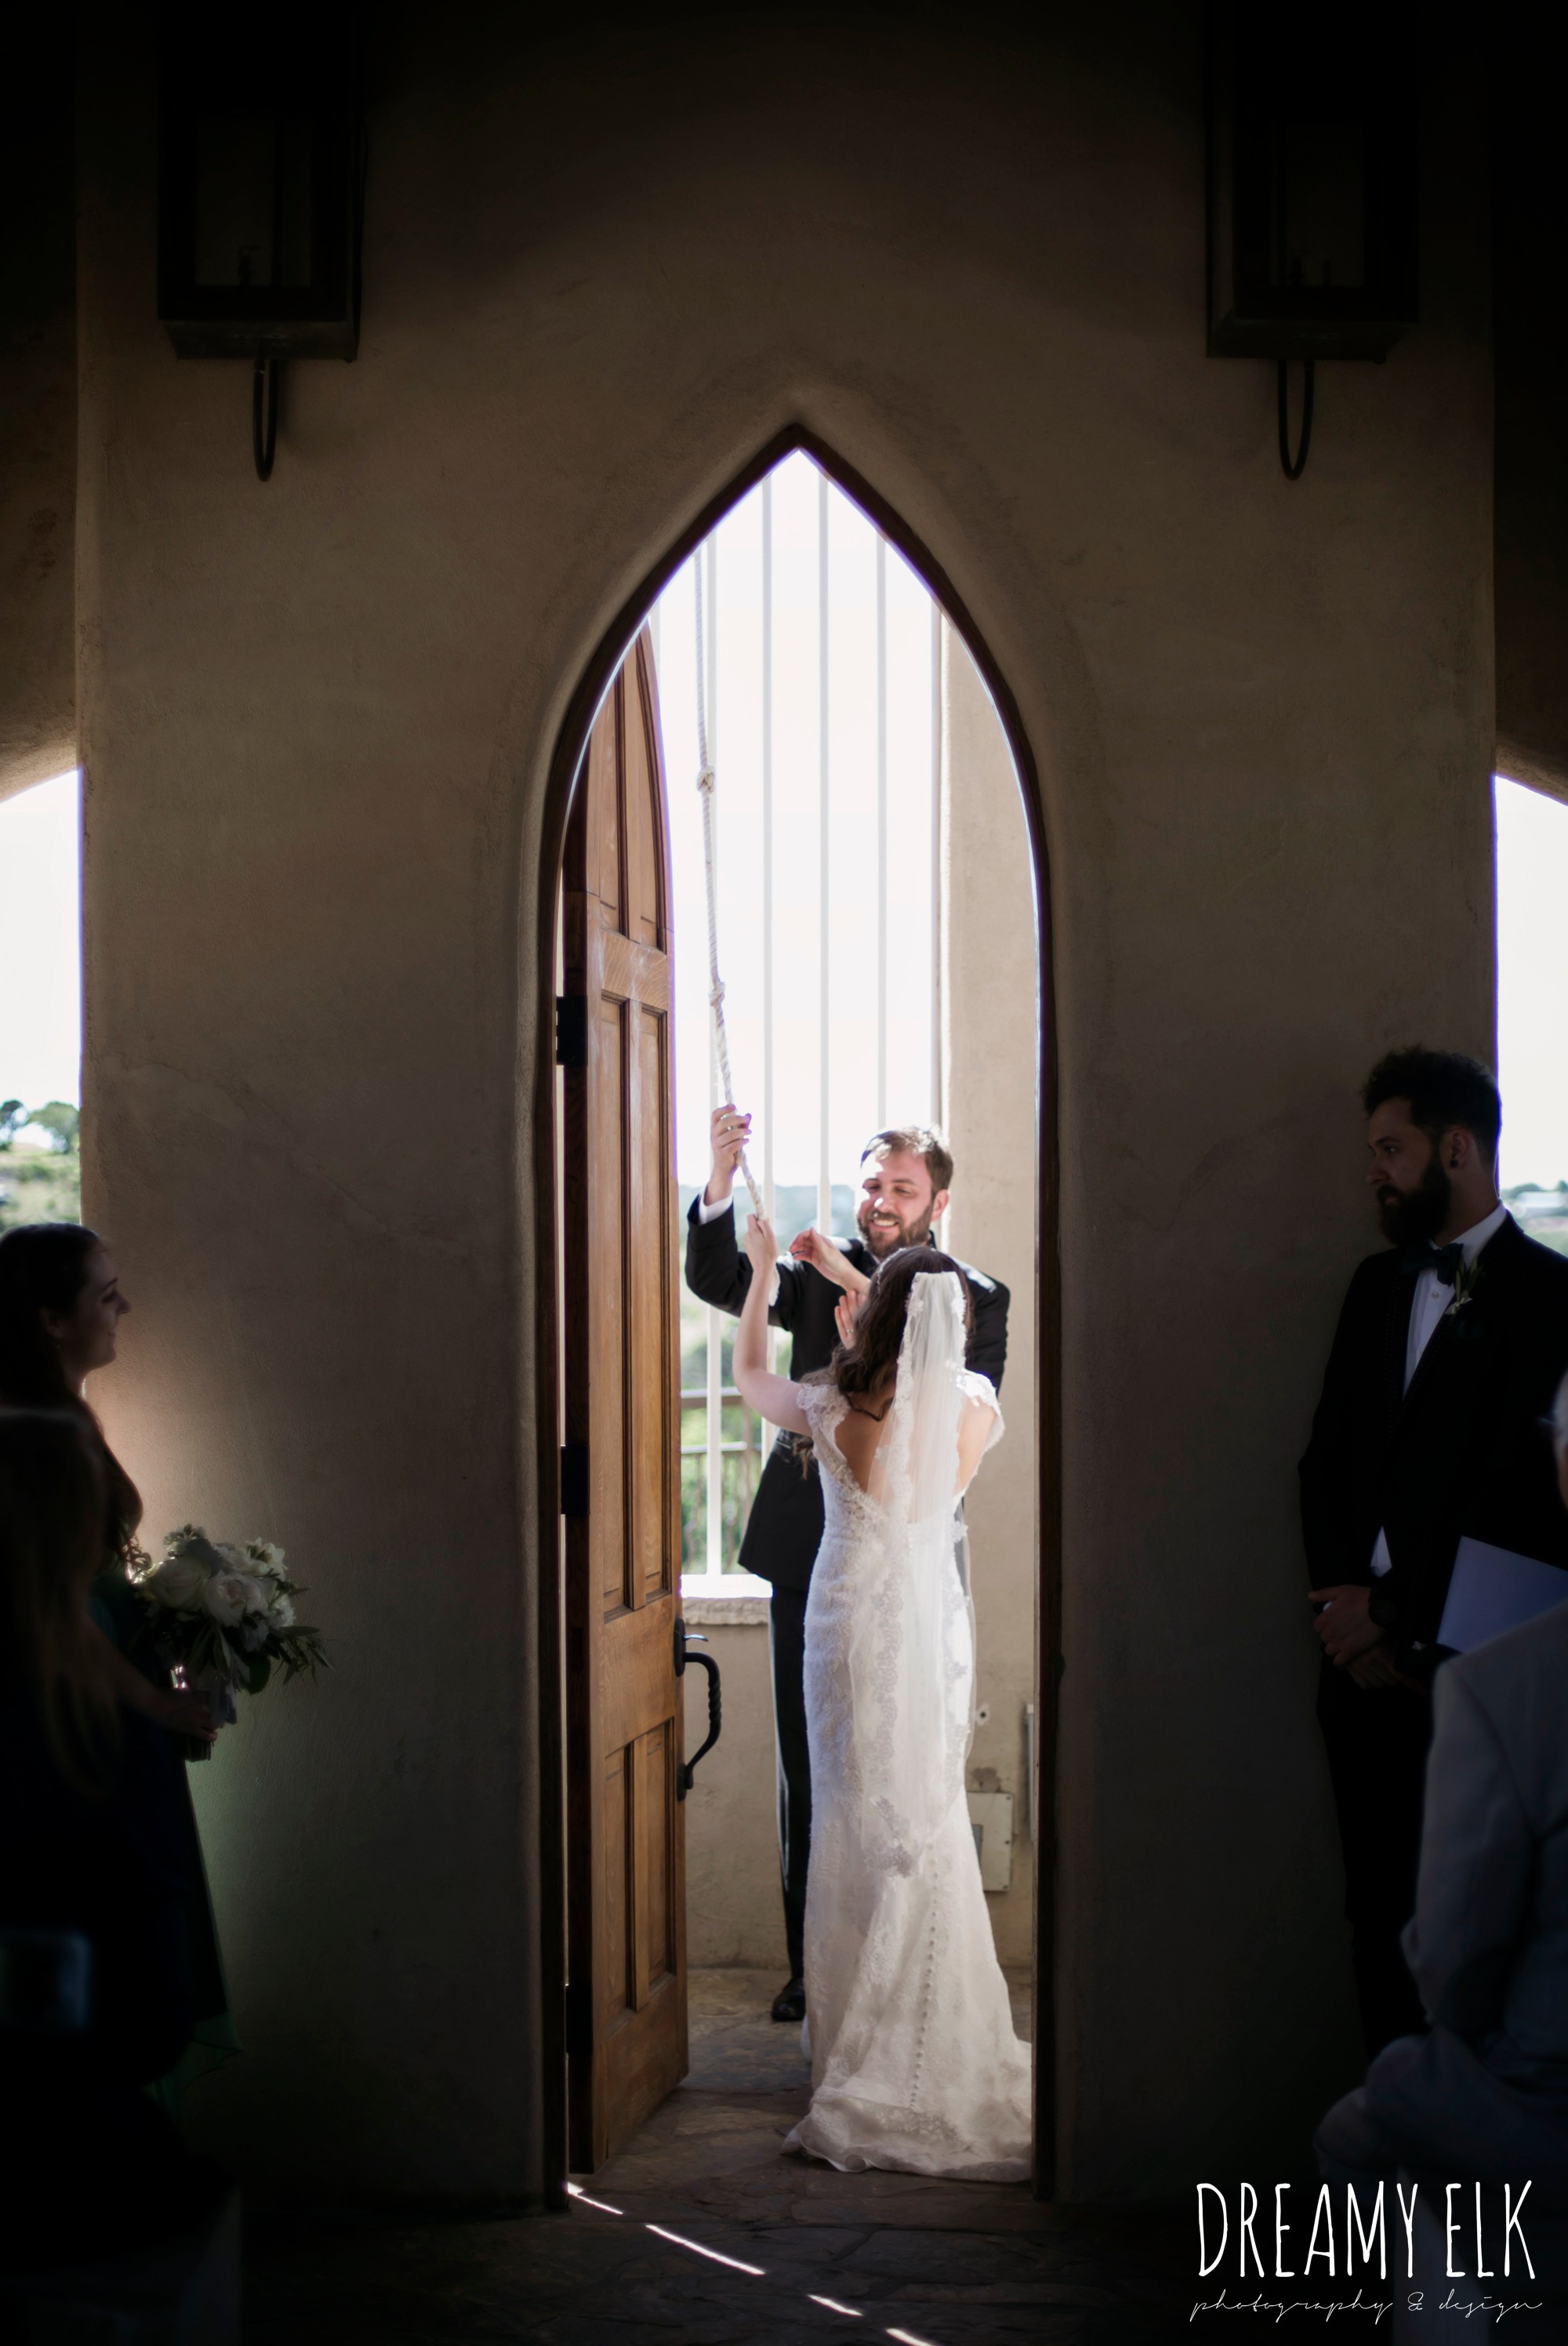 bride and groom ringing the bell, outdoor spring april wedding photo, chapel dulcinea ceremony, thurman's mansion, dripping springs, texas {dreamy elk photography and design}